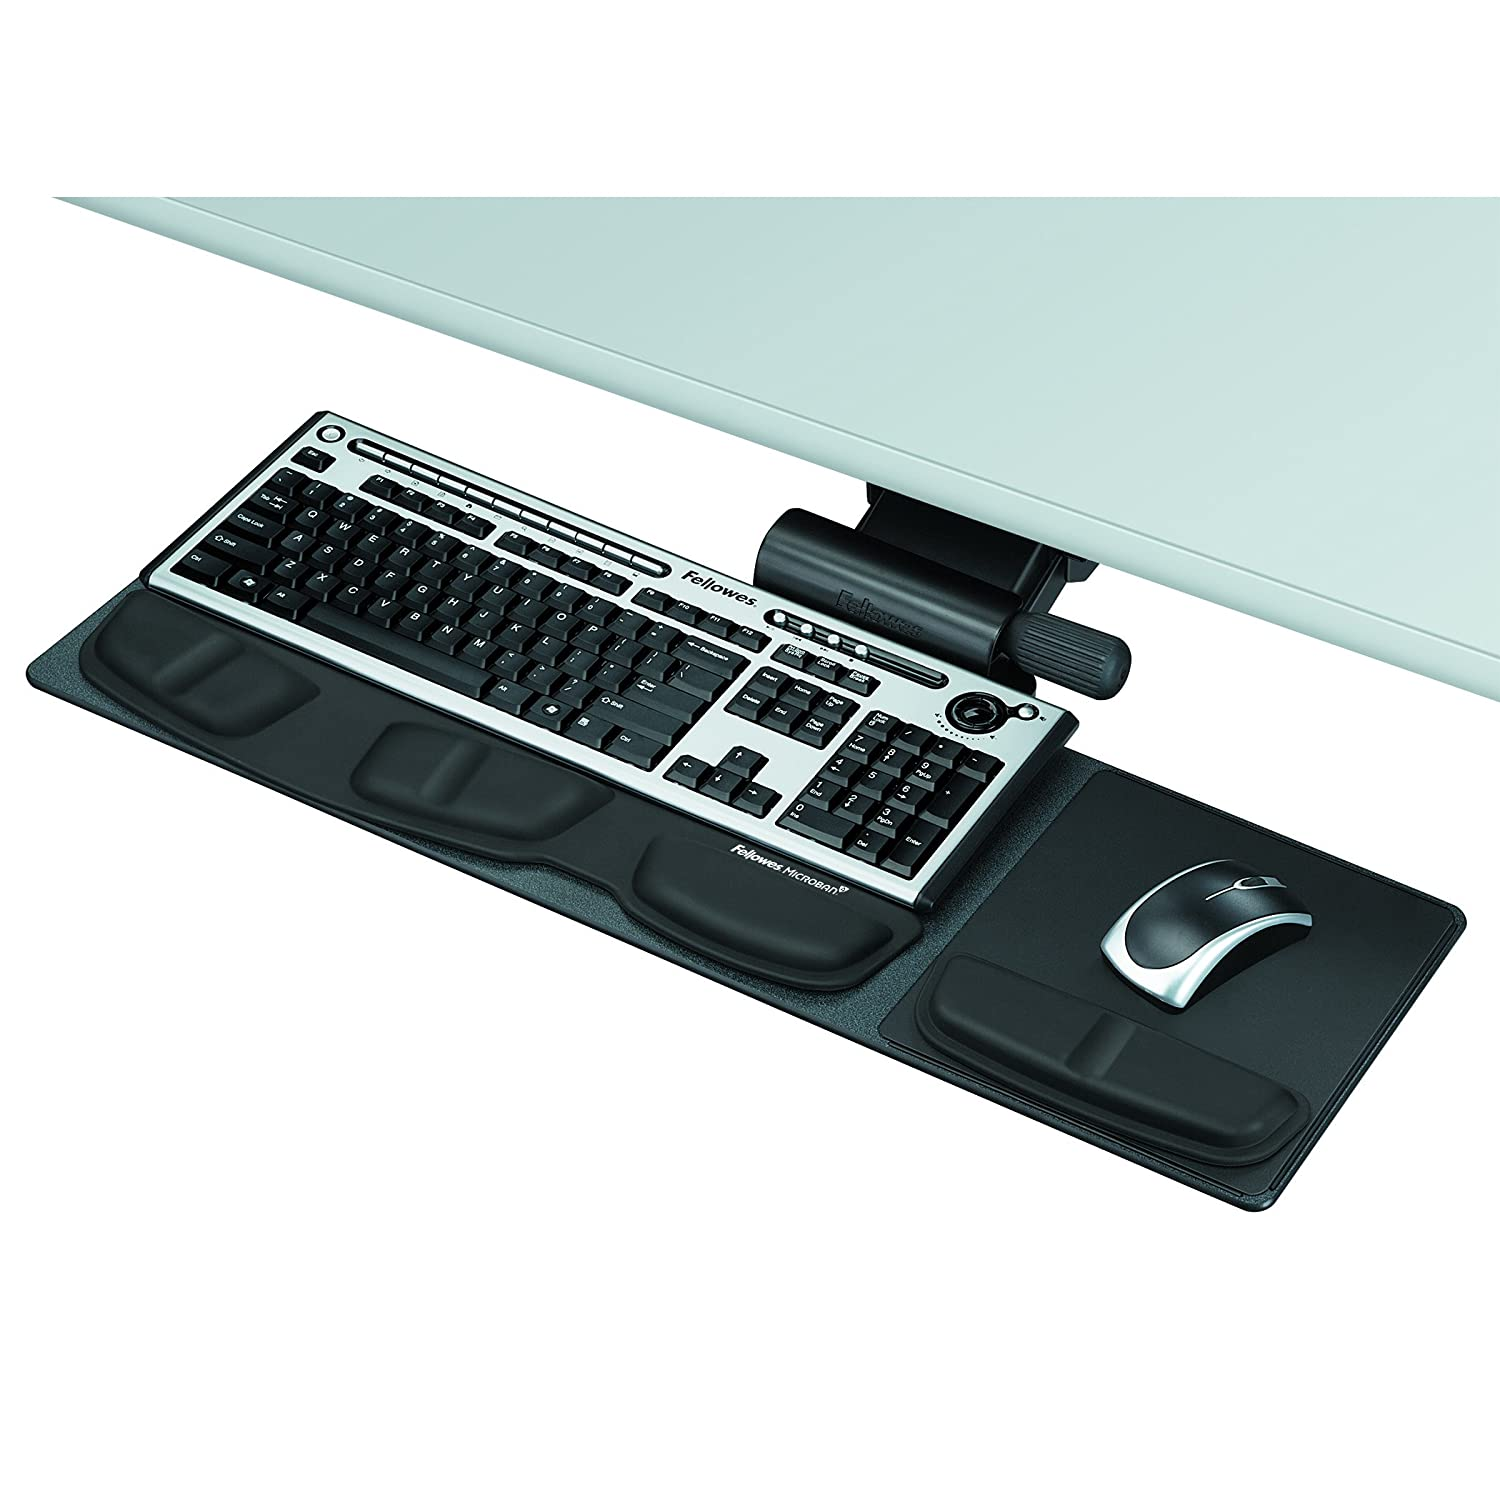 Fellowes Professional Series Compact Keyboard Tray (8018001) Desk Accessories